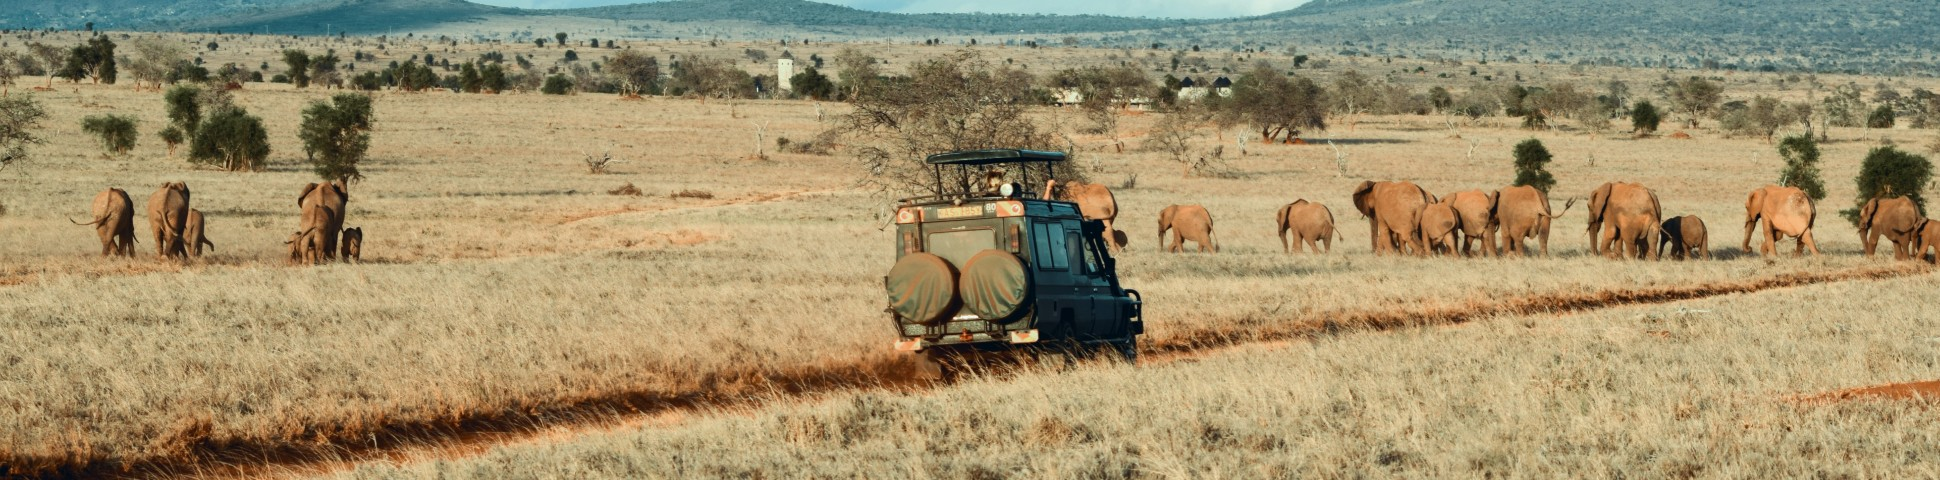 Herd of elephants spotted on safari in Africa